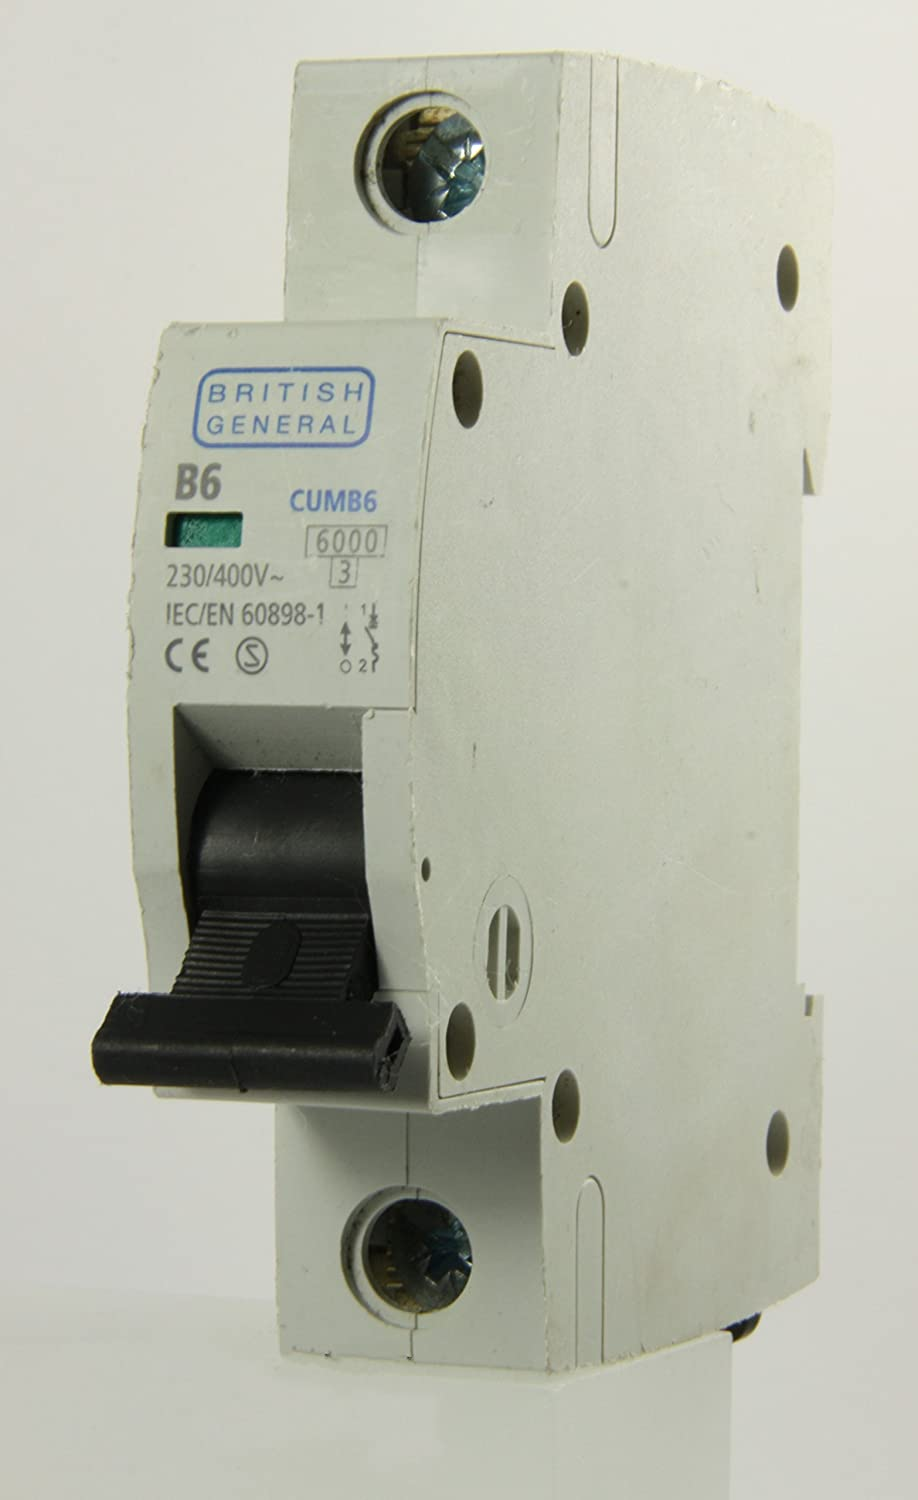 BG British General - CUMB6 - 6a Type B Single Pole MCB